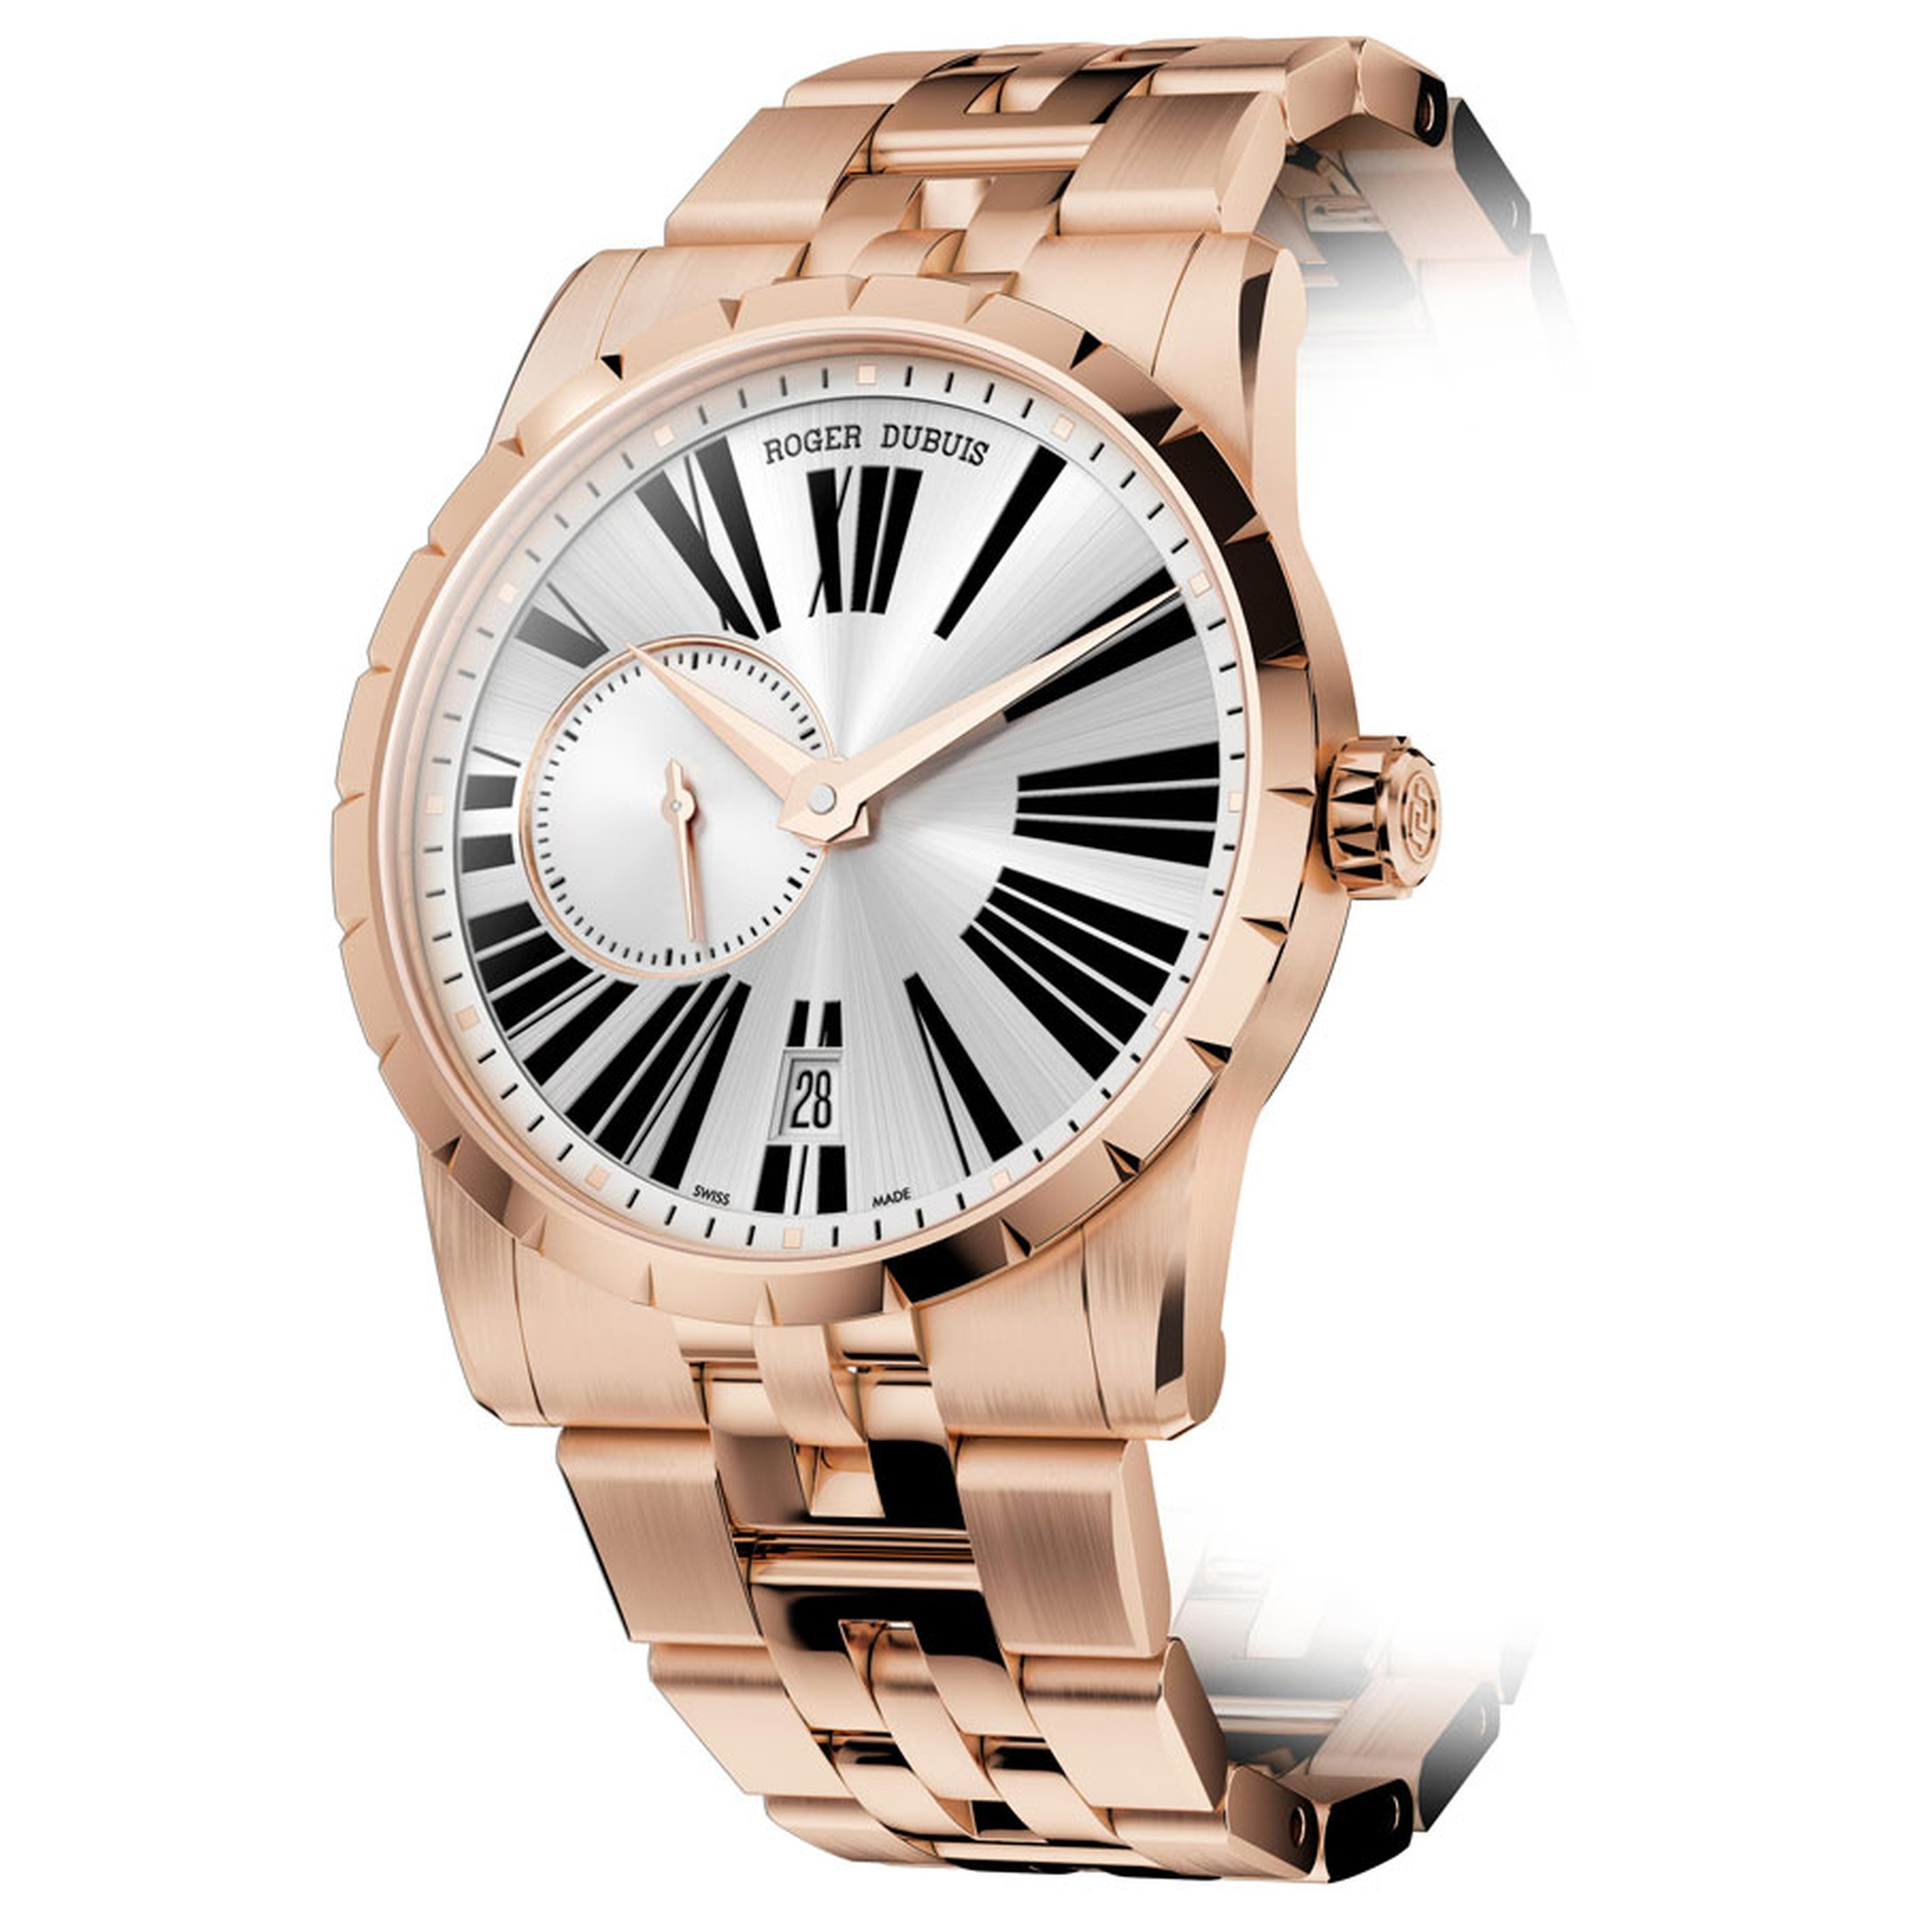 Roger-Dubuis-Excalibur-42-in-pink-gold.jpg